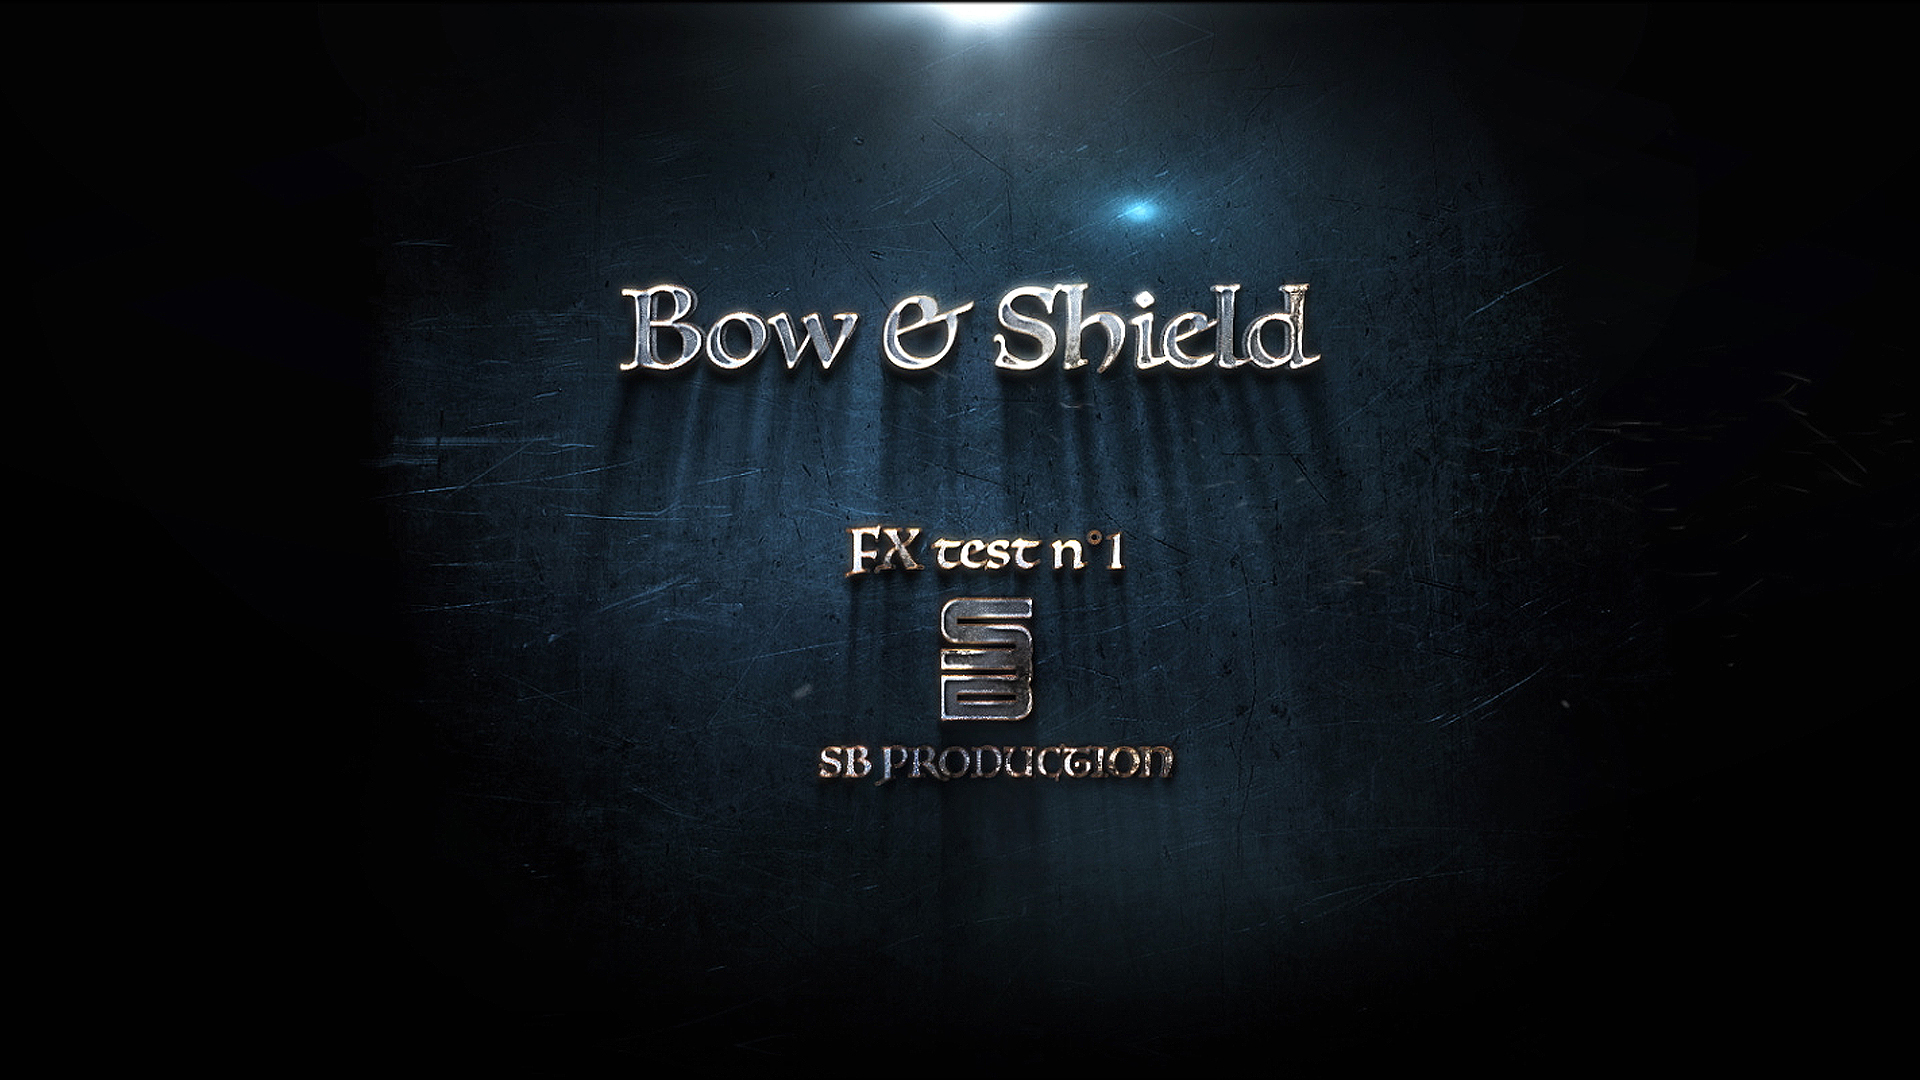 Bow and Shield